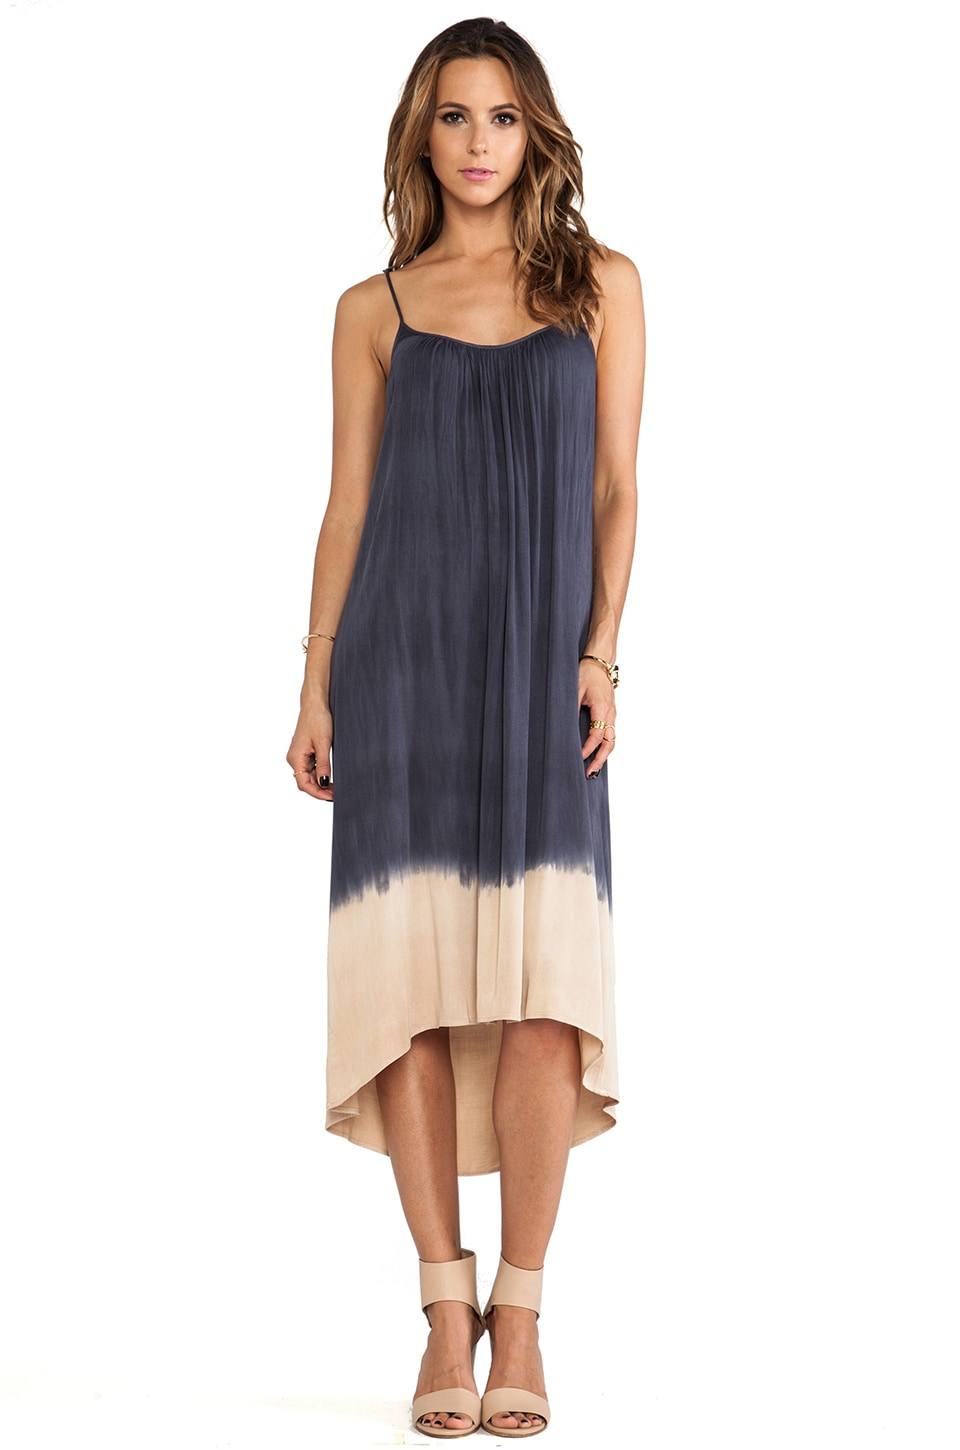 Kain Porter Dress in Navy to Nude Fade